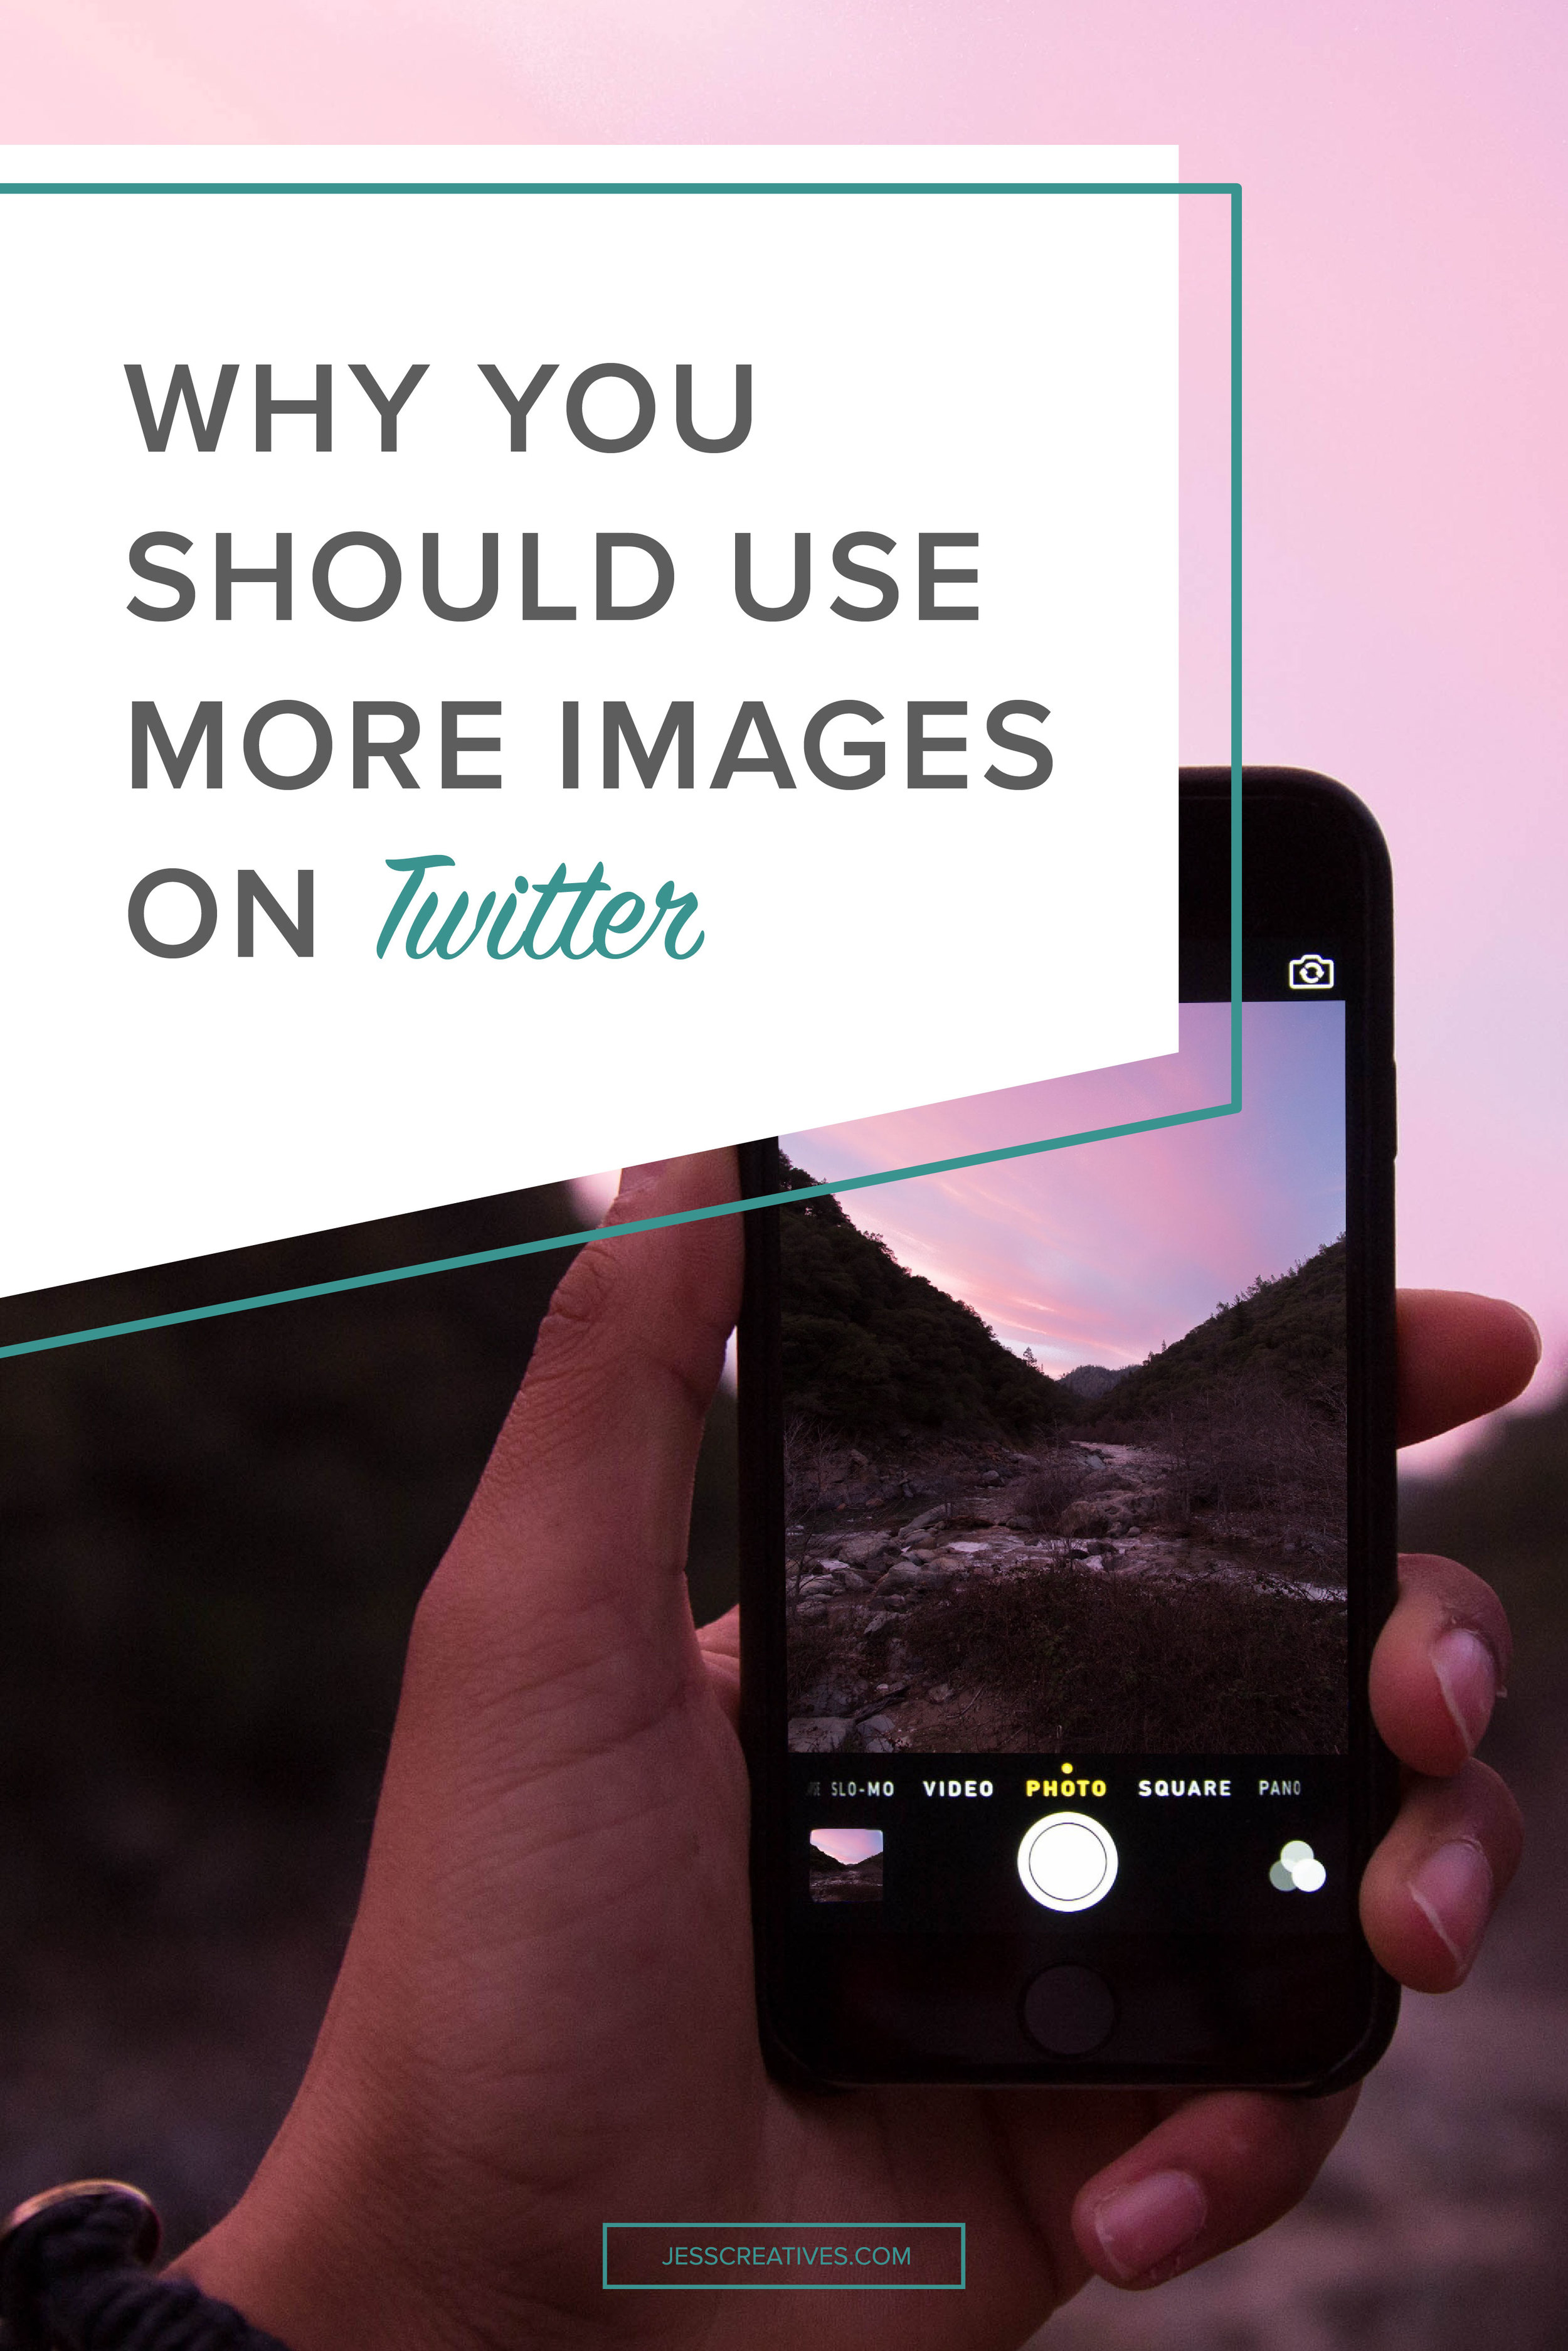 Share on facebook tweet this post pin images to pinterest - Share On Facebook Share On Twitter Share On Pinterest